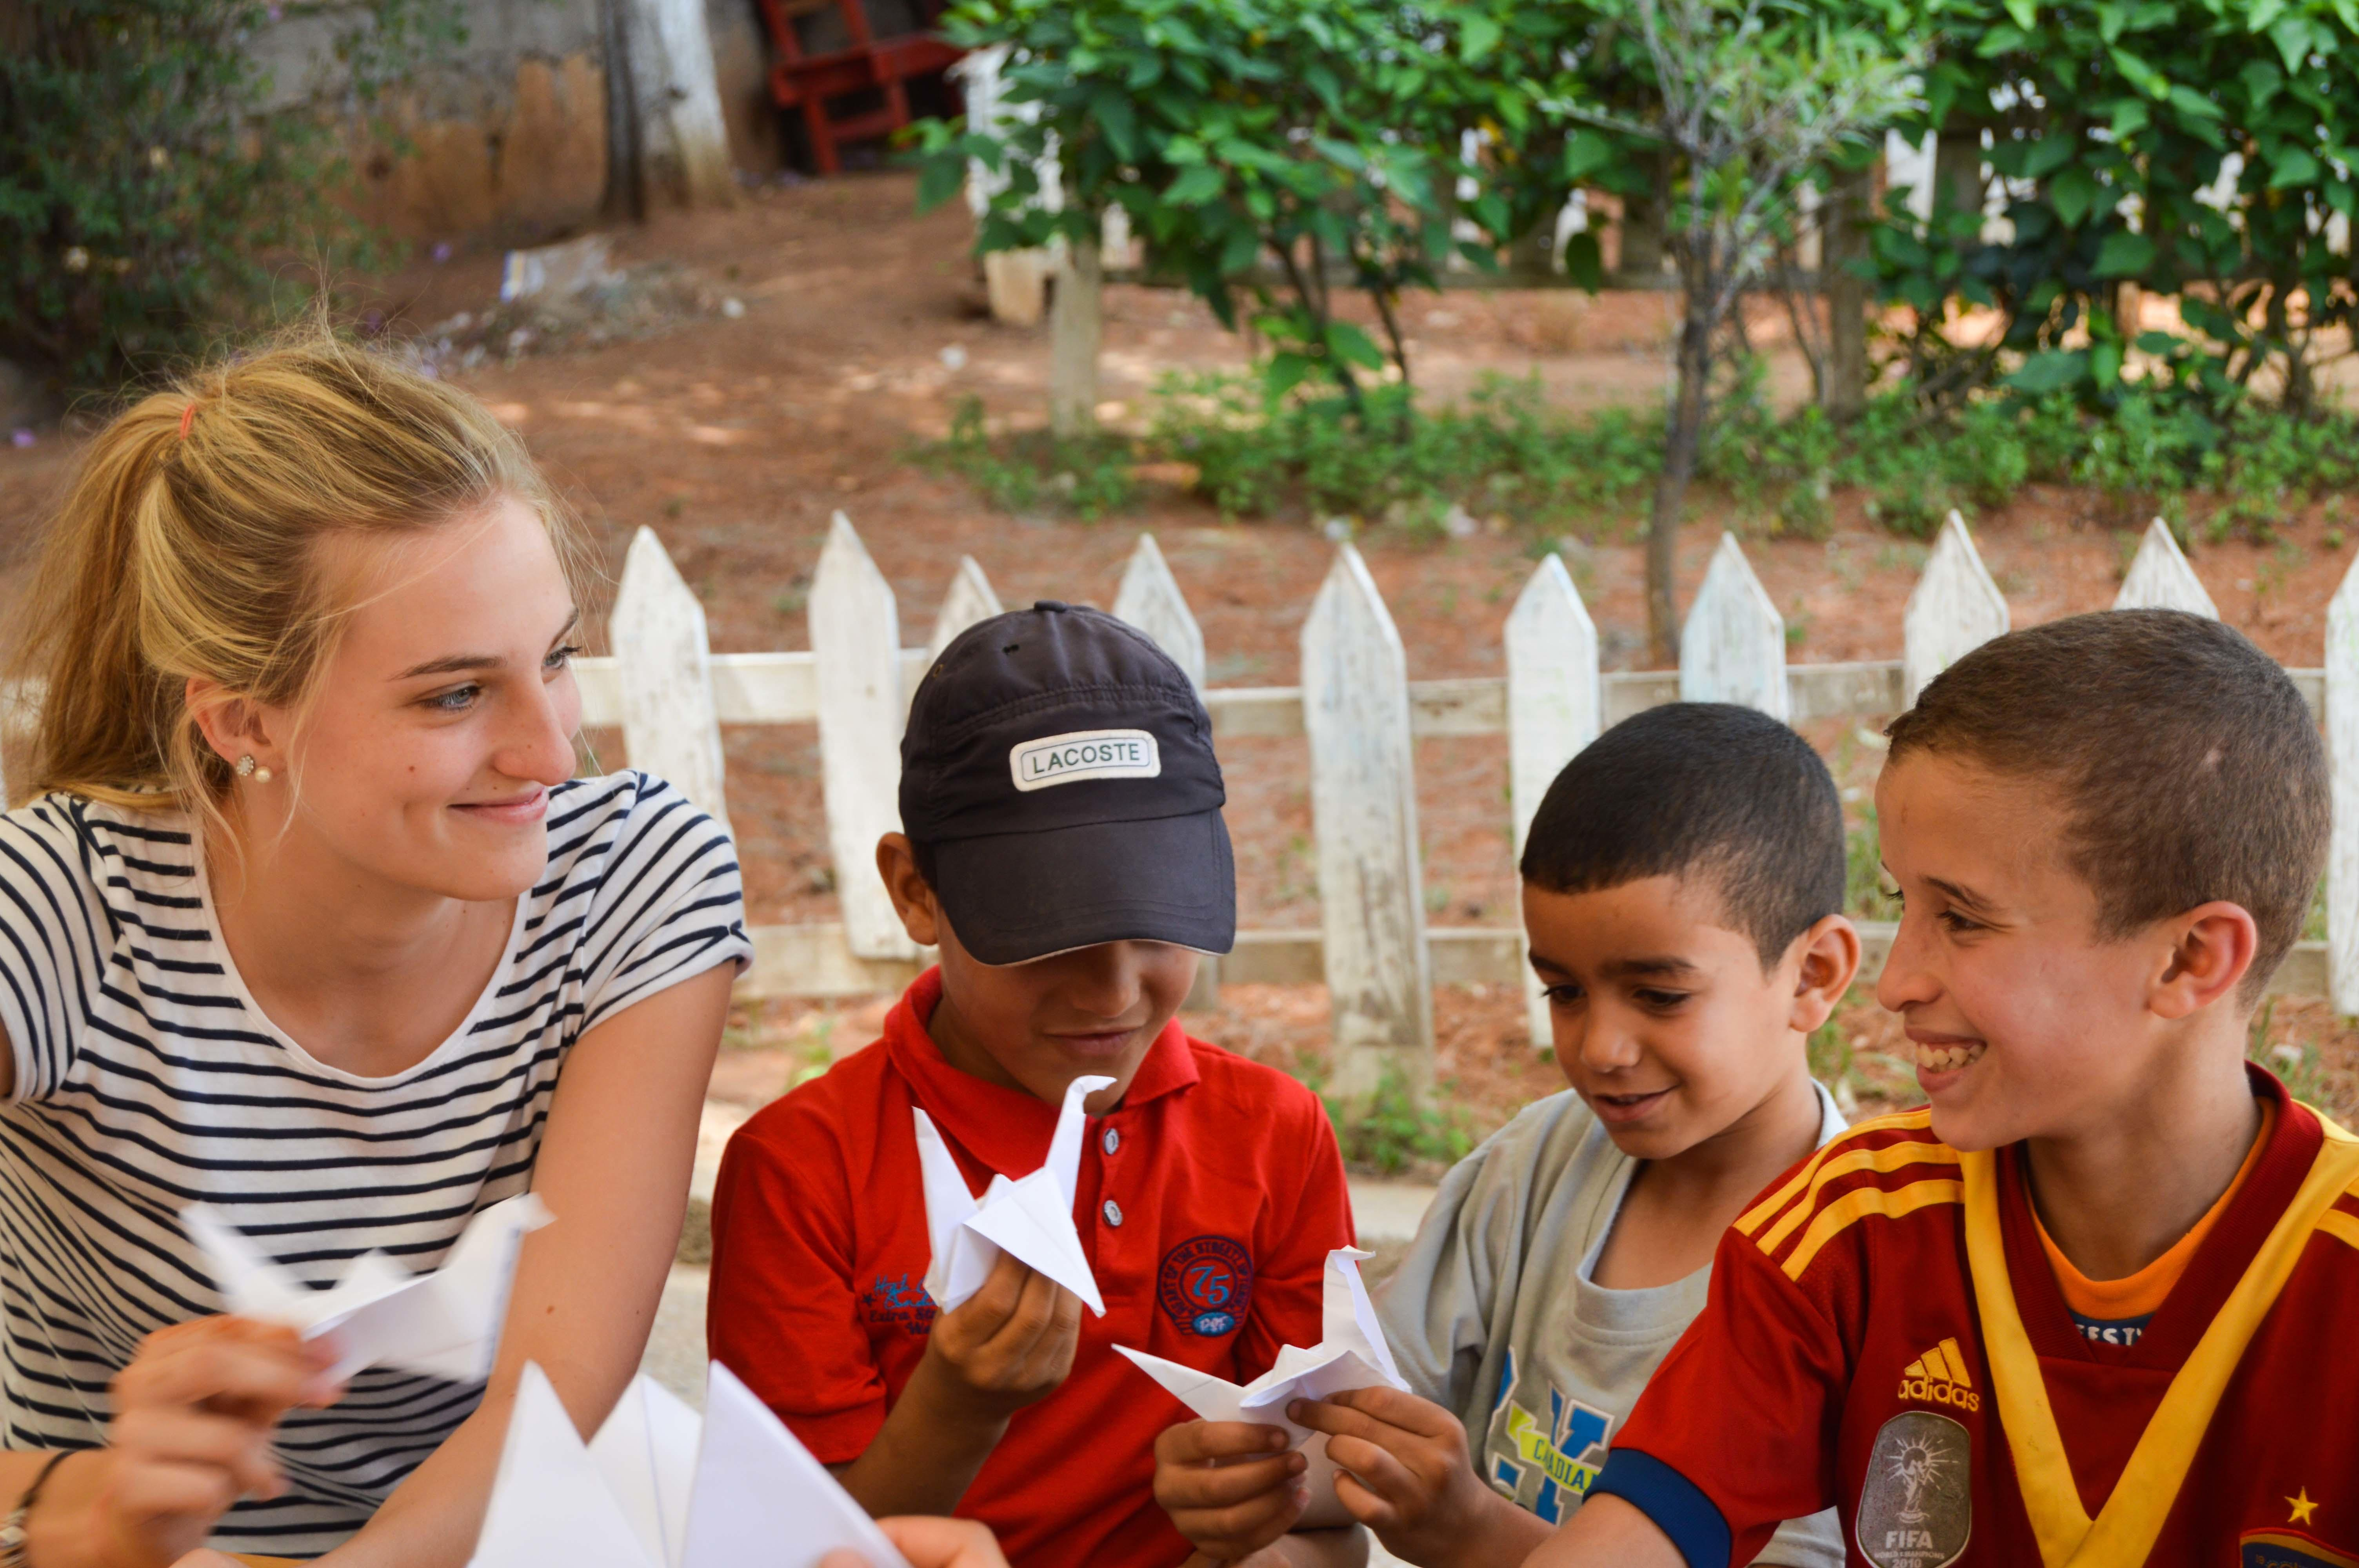 A volunteer helps children with an arts and crafts activity in Morocco.